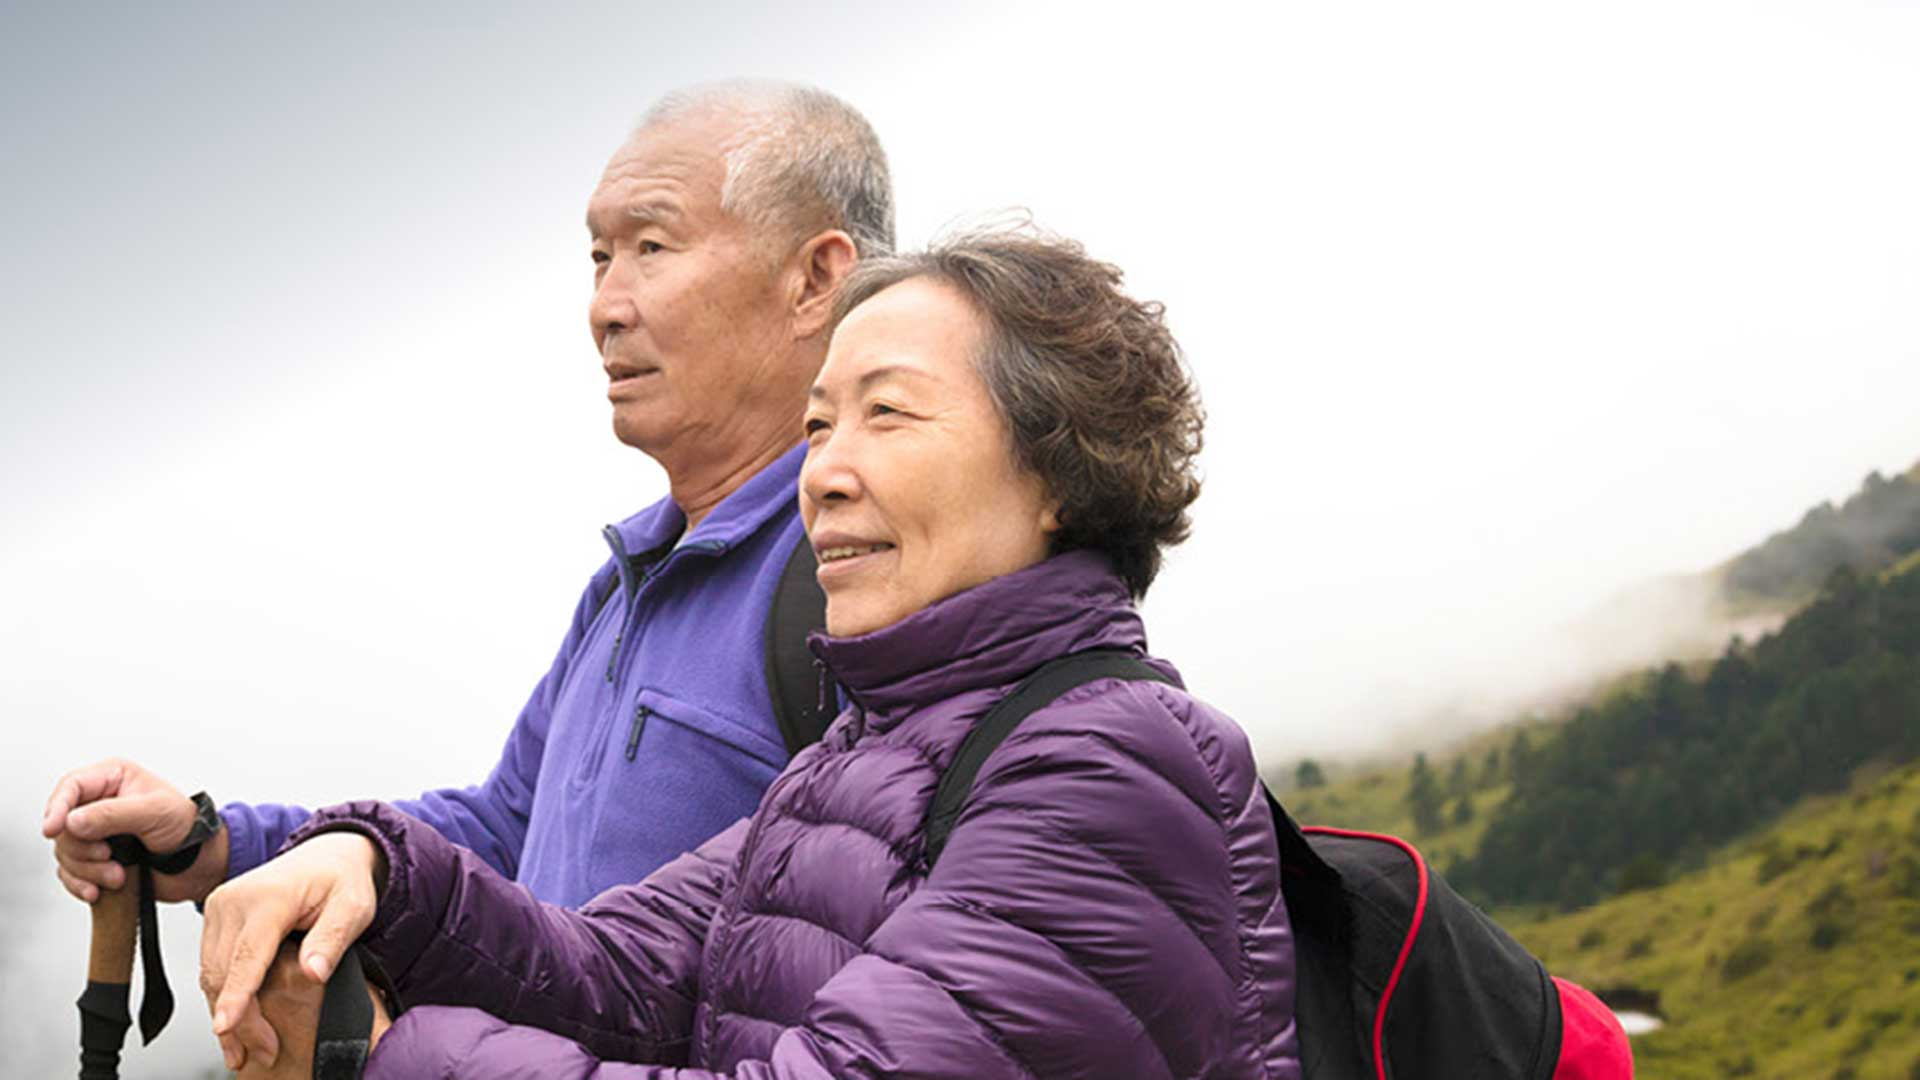 an elderly asian couple stand atop a mountain surrounded by fog, proud of overcoming hearing loss